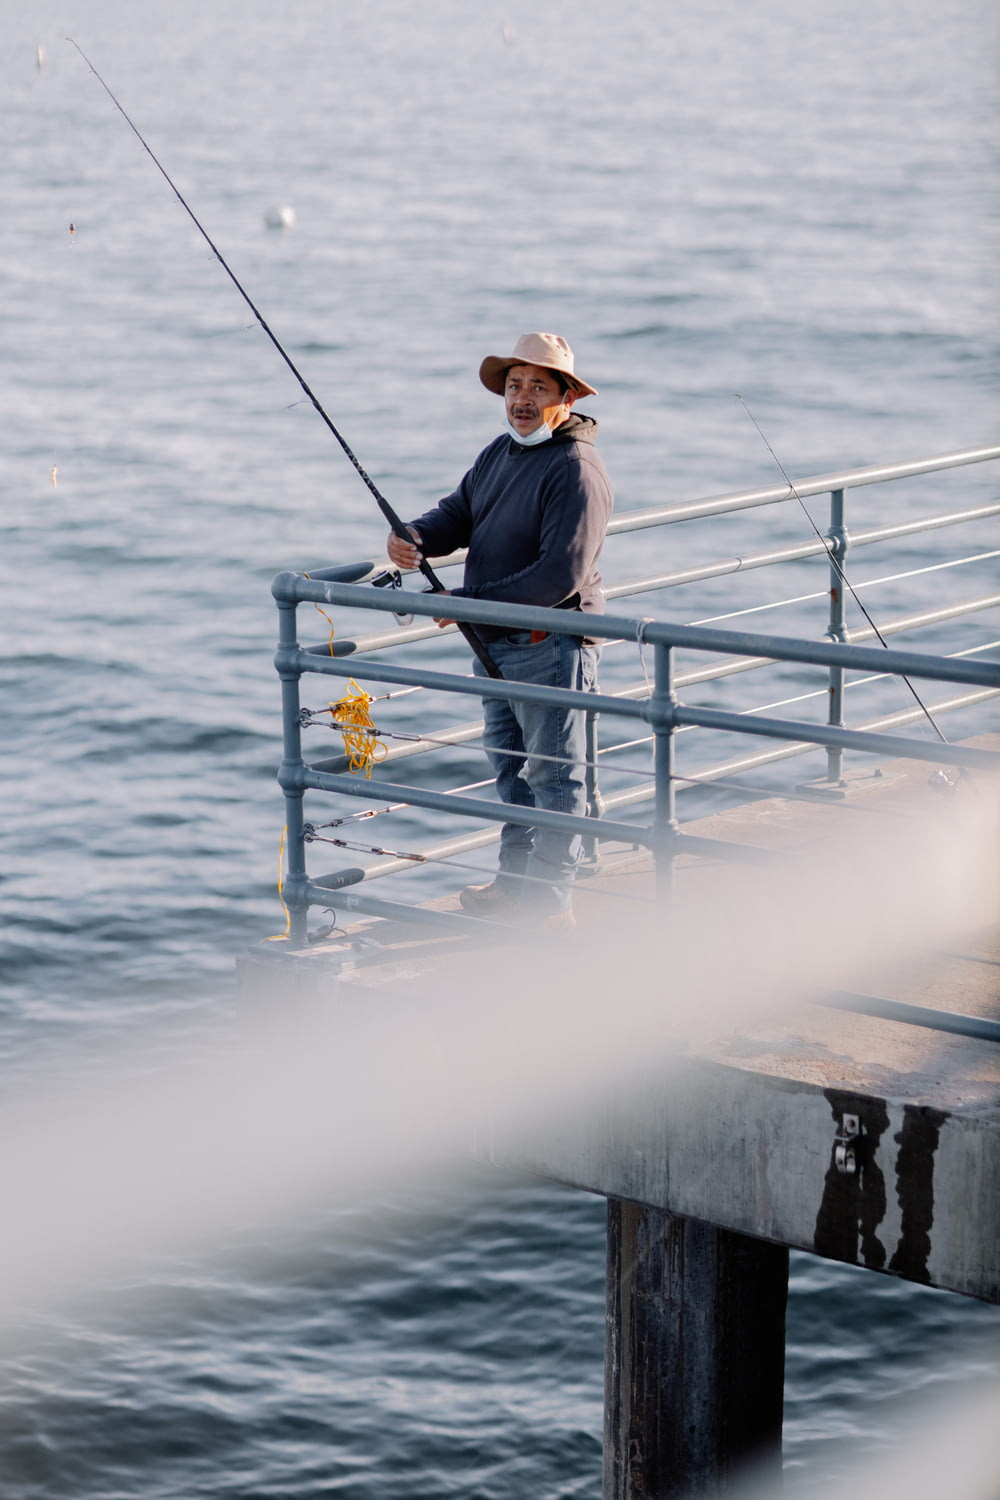 man in black jacket and brown hat sitting on white metal railings near body of water